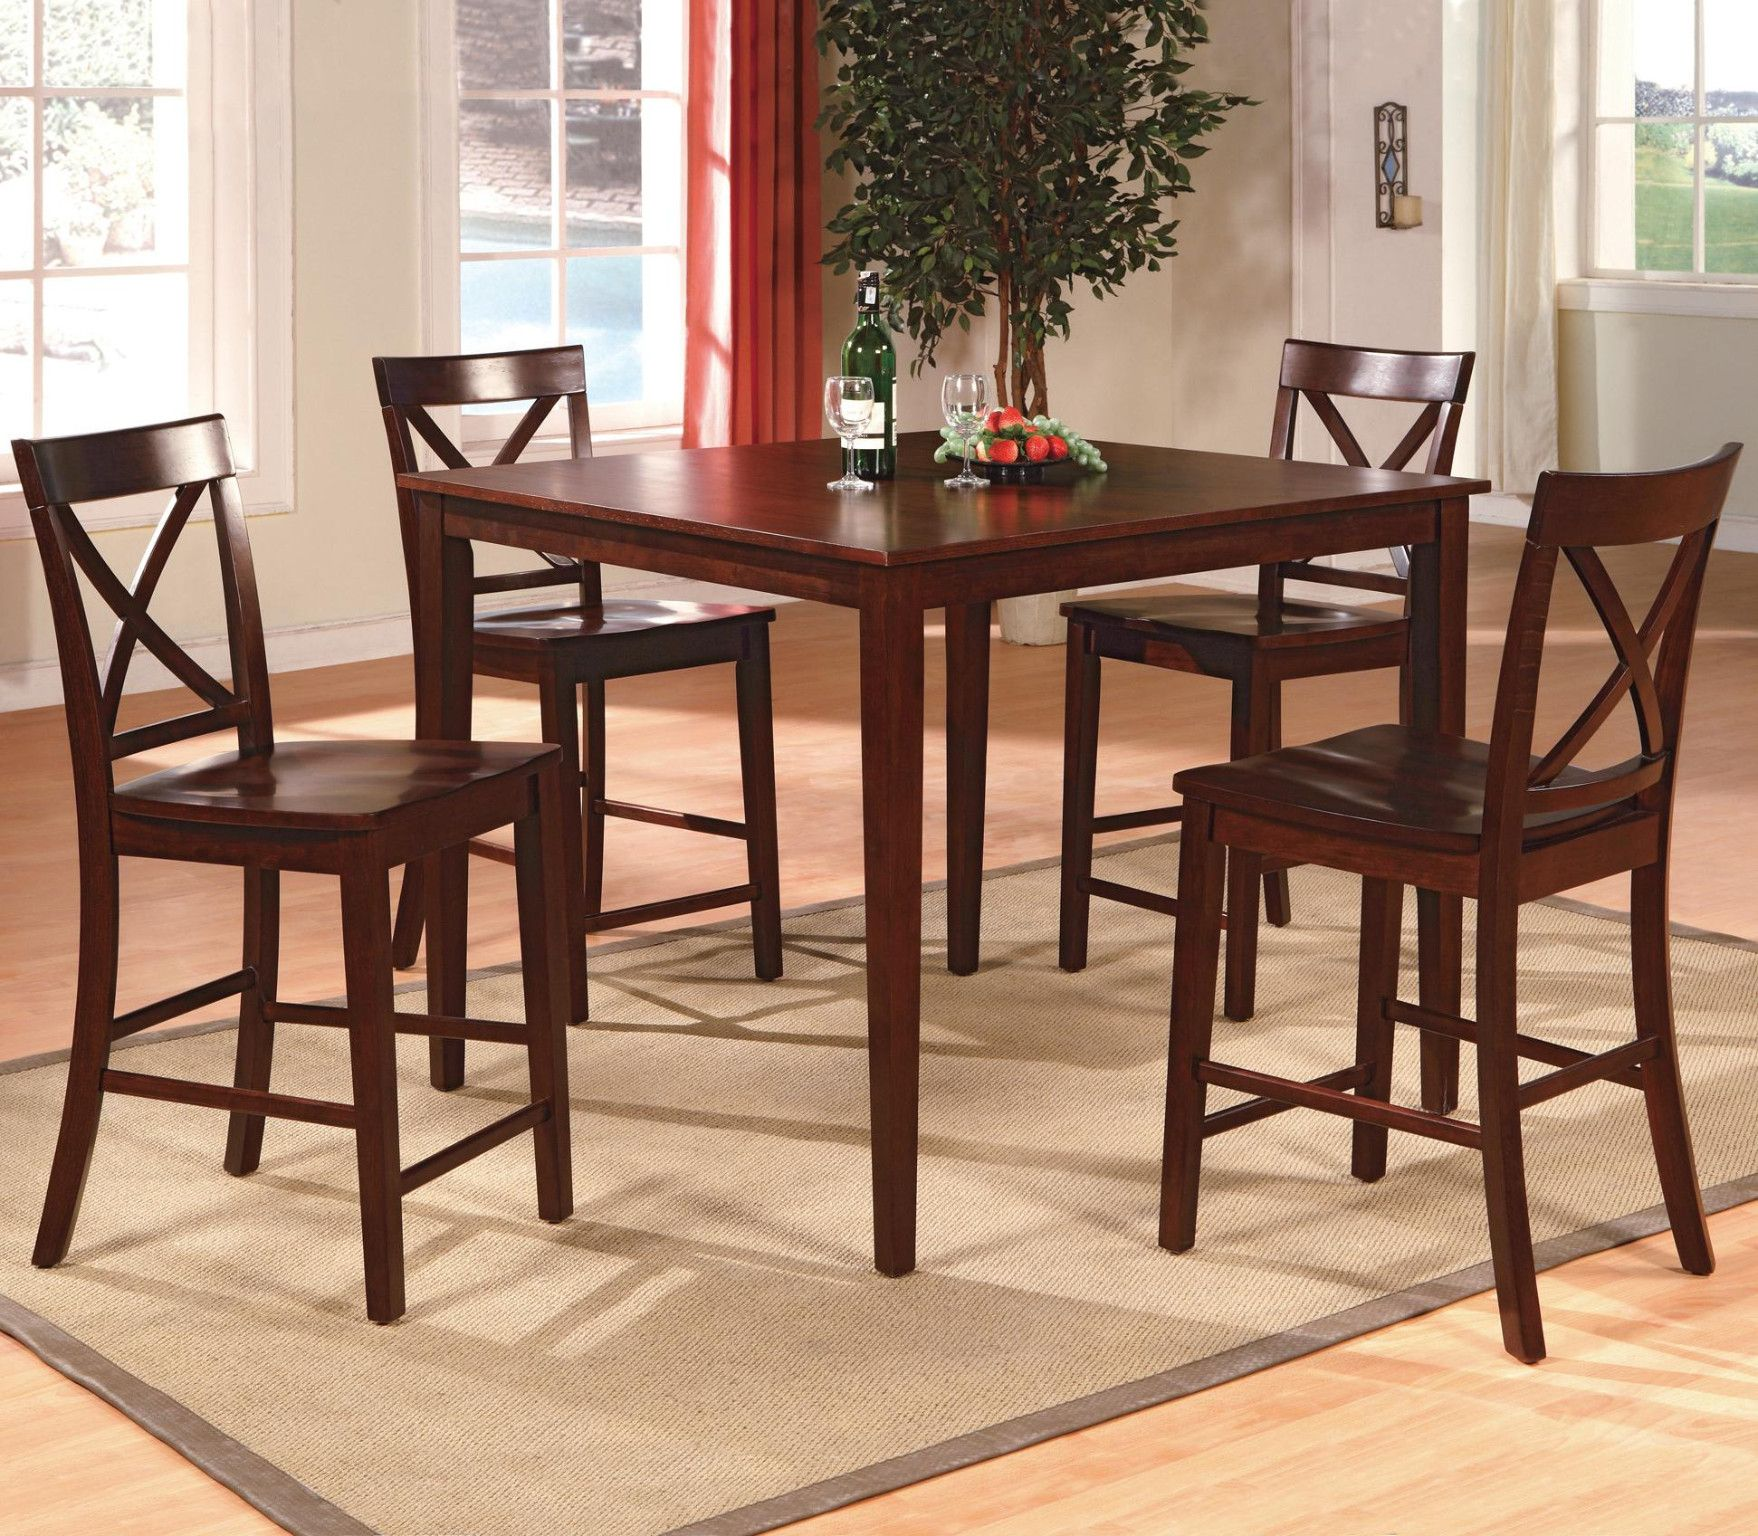 Theodore 5 Piece Counter Height Table And 4 Chairs 399 00 Table